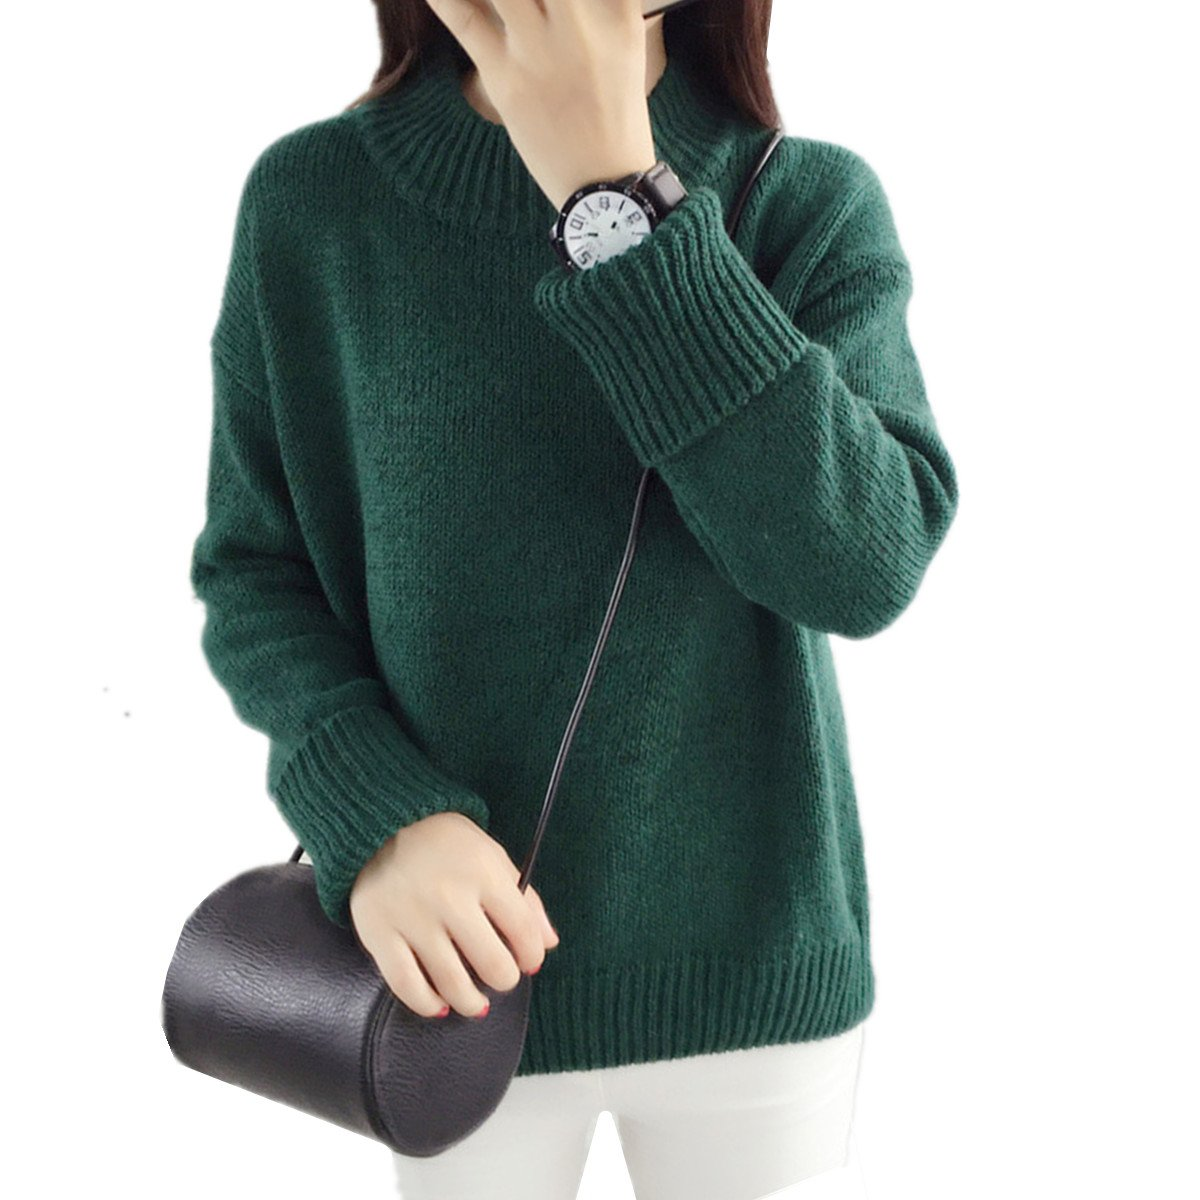 ad5ad49ec68a24 HEYFAIR Women Thick Knitted Plain Pullover Sweater Jumper (Blue) at Amazon  Women s Clothing store